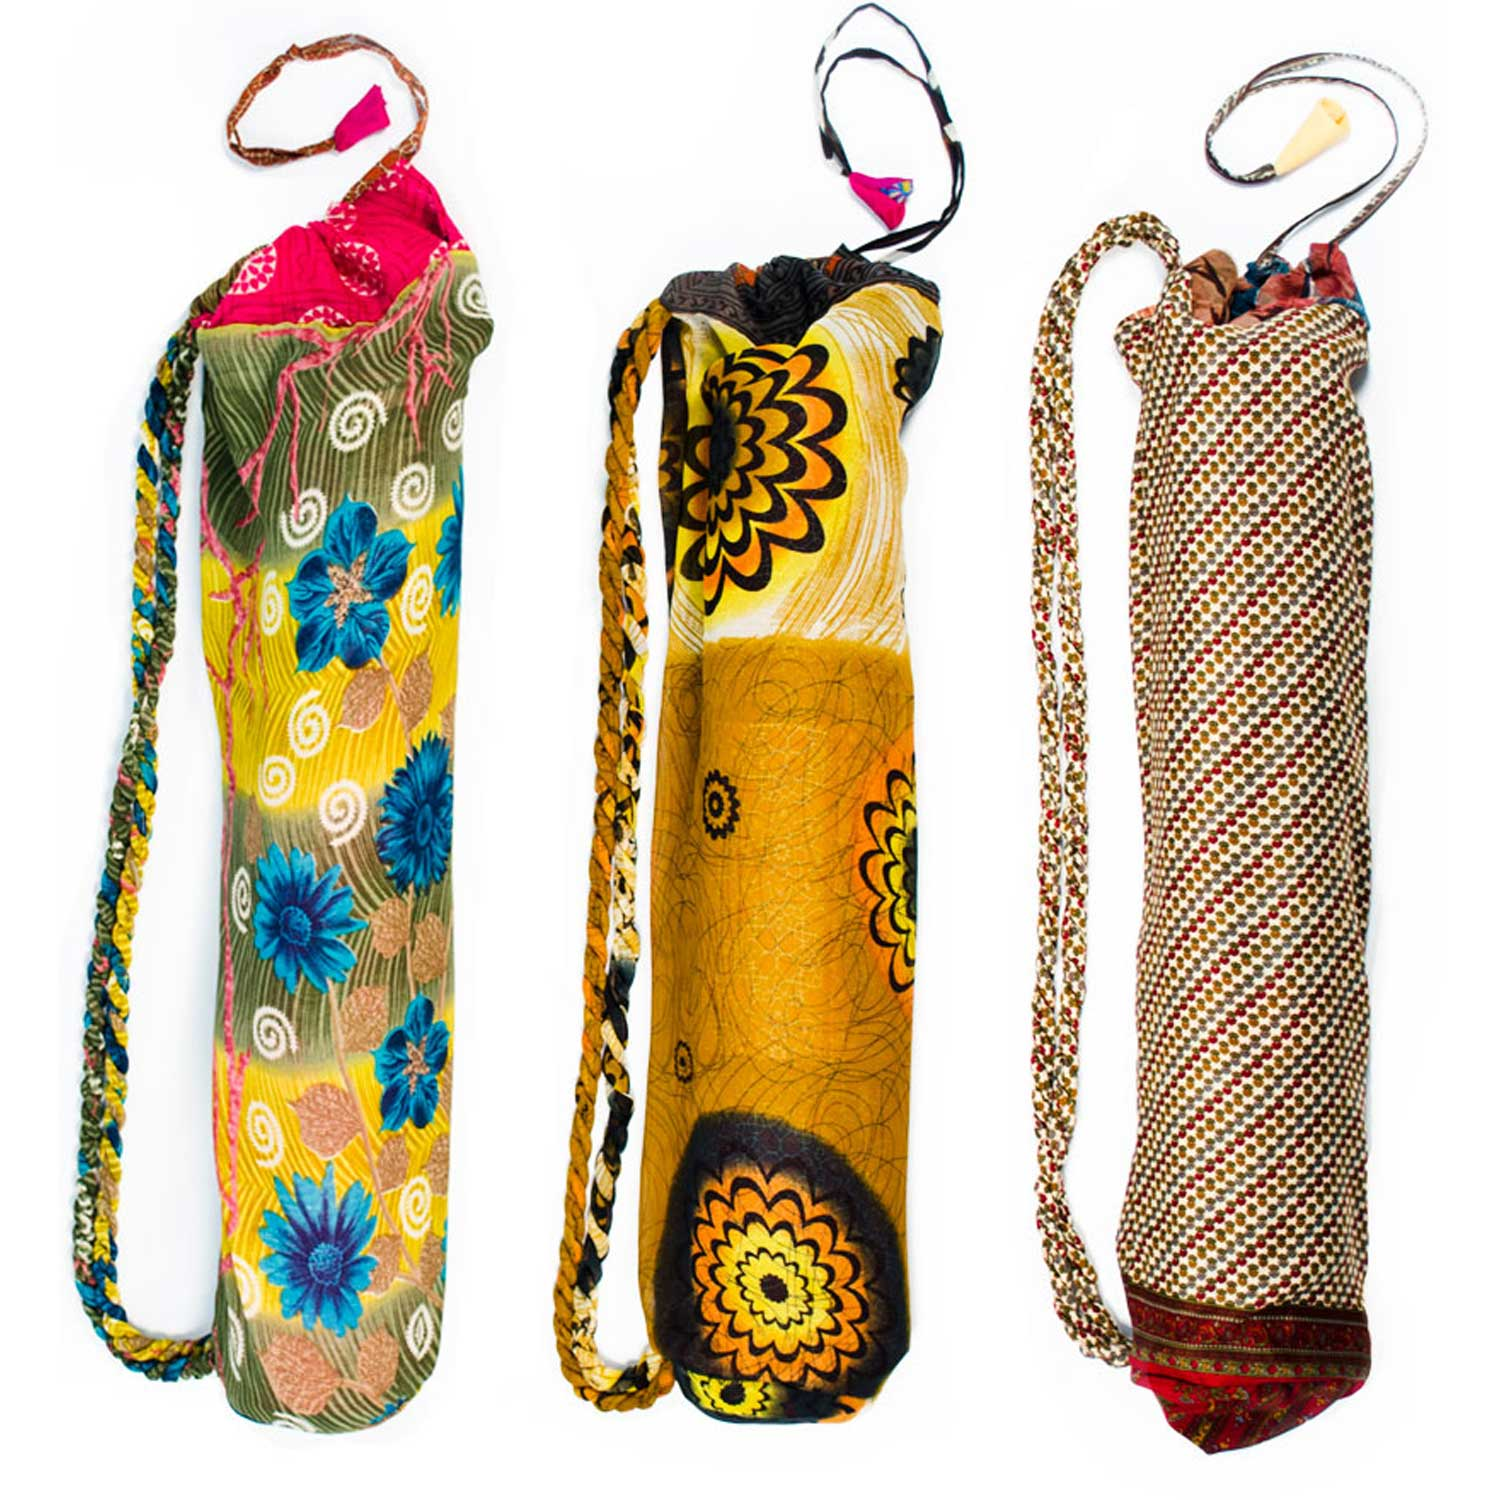 Upcycled Sari Yoga Bag - Assorted - Sold Individually